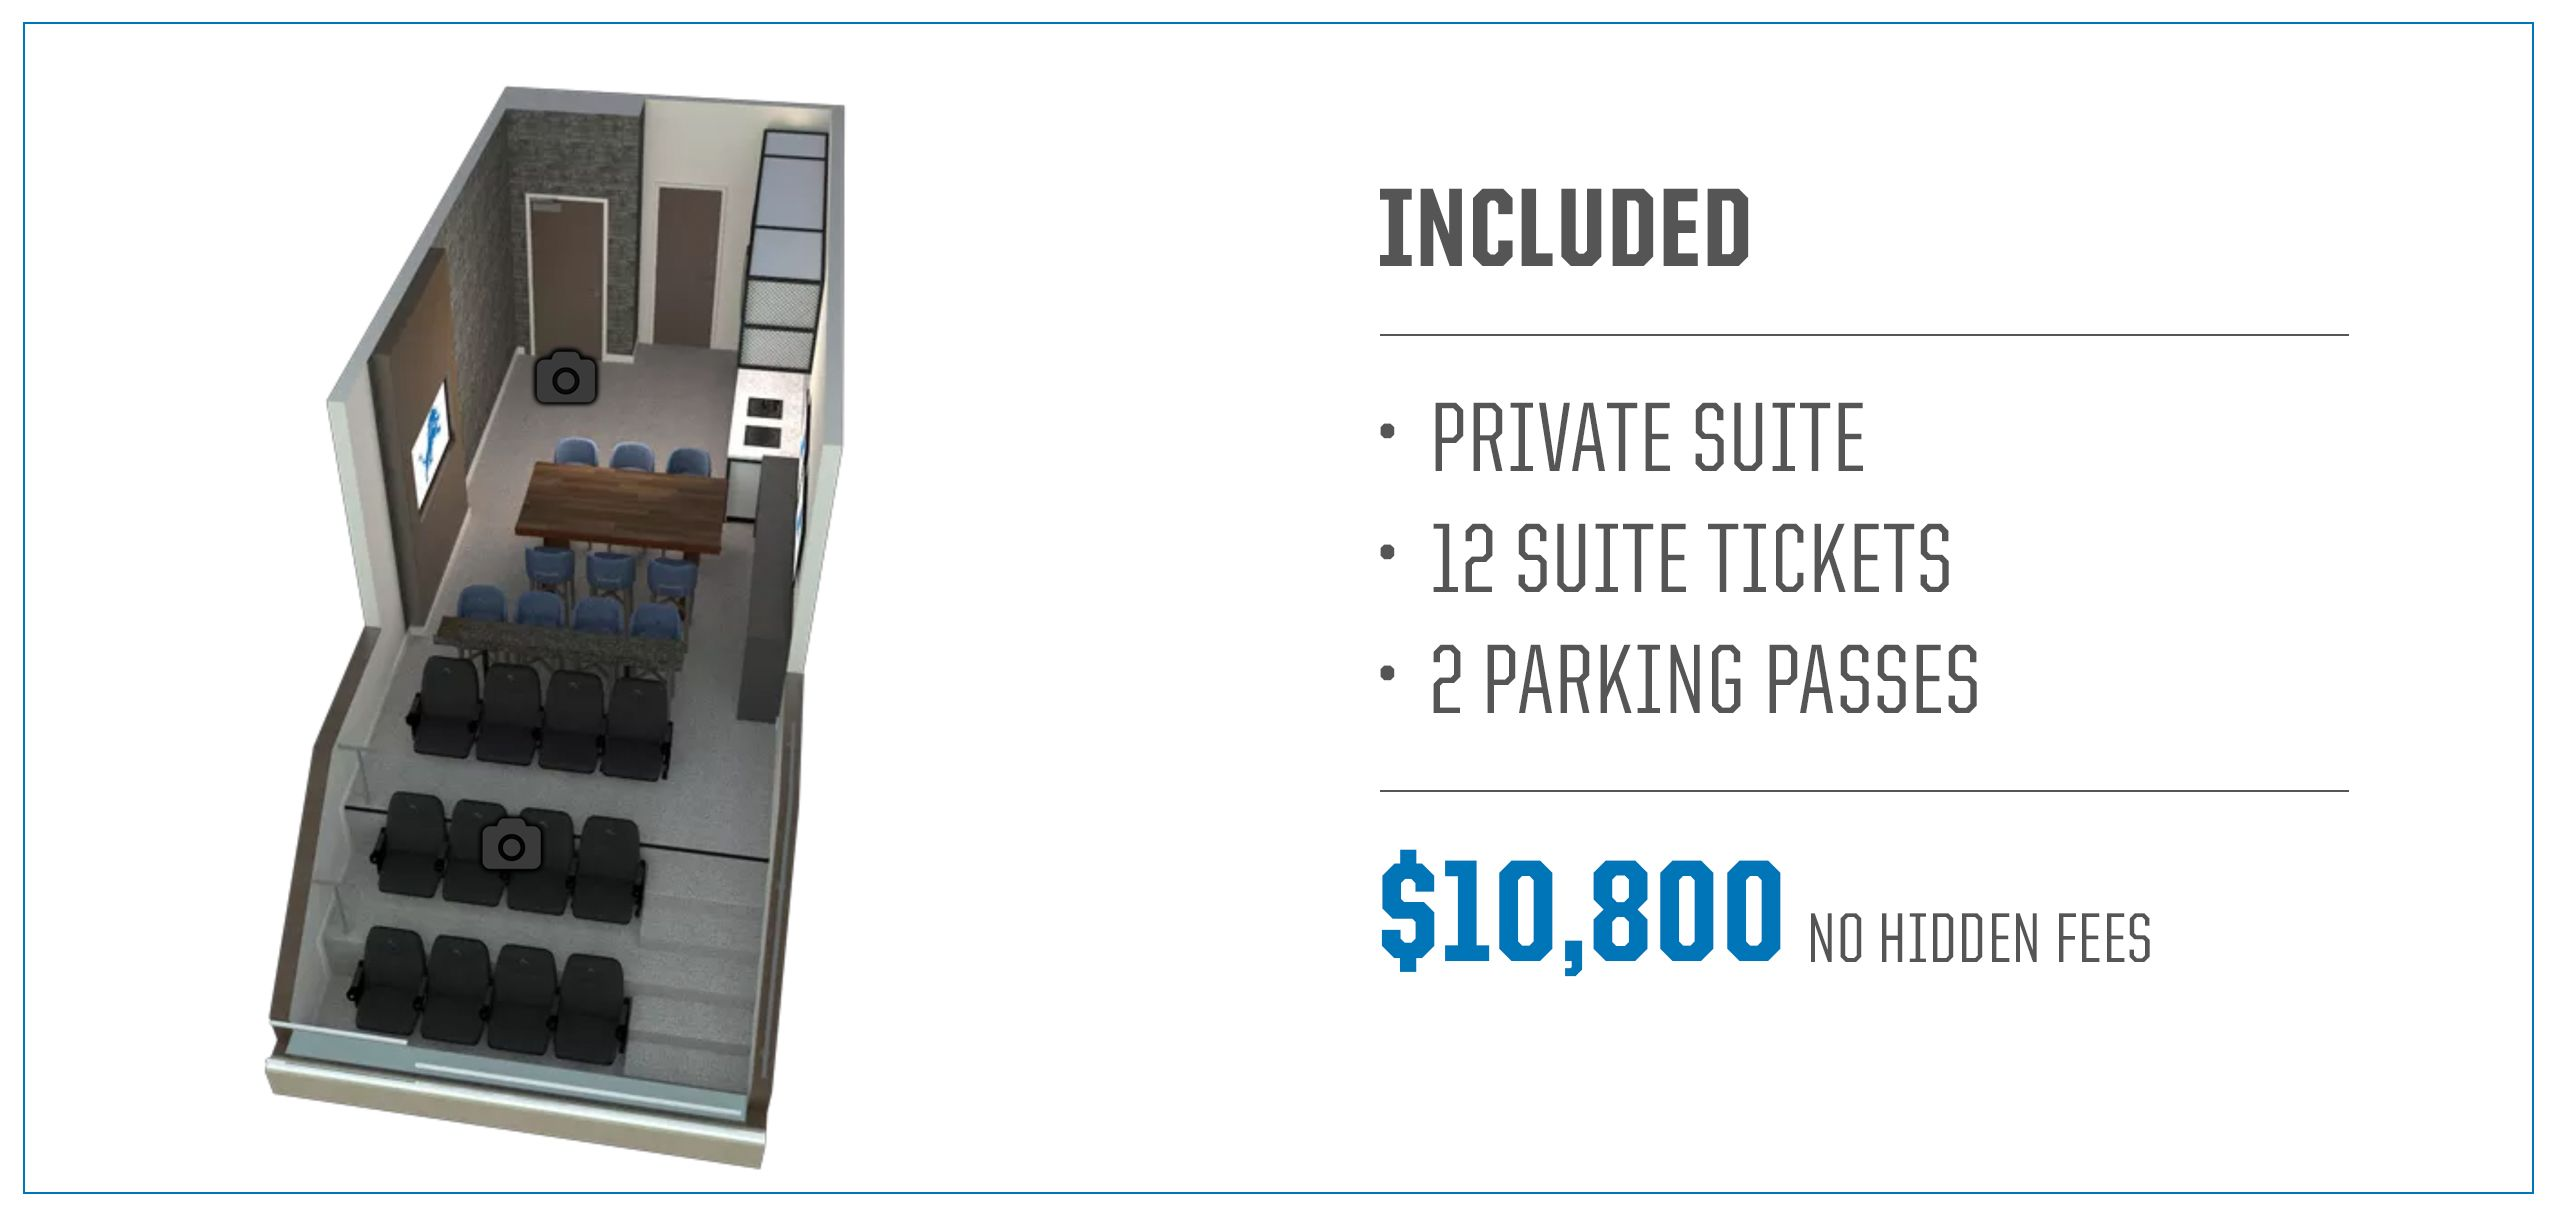 suite-purchase-information-map-630-texans